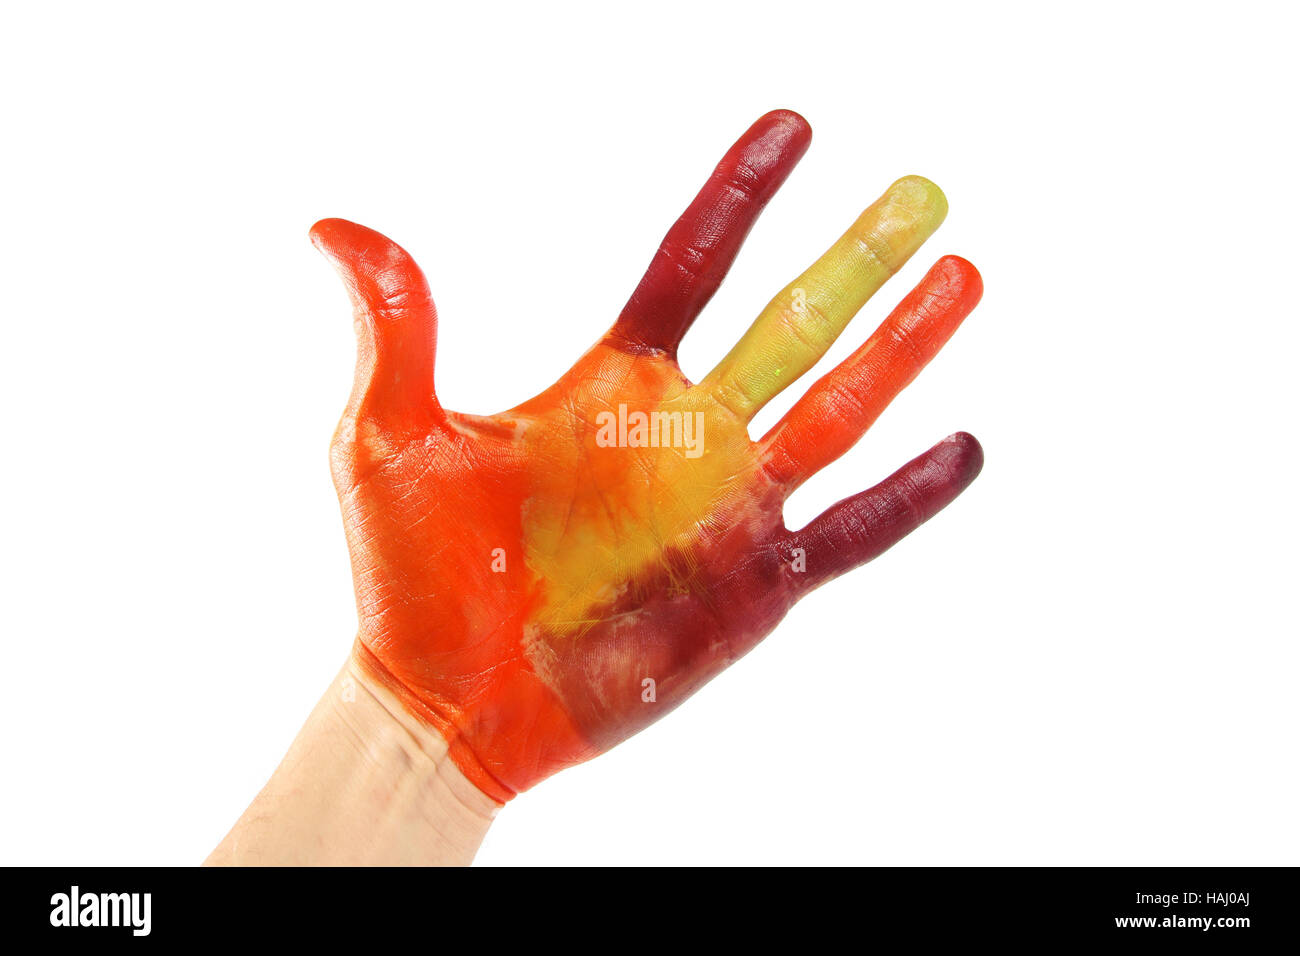 Hand painted in colorful colors - Stock Image